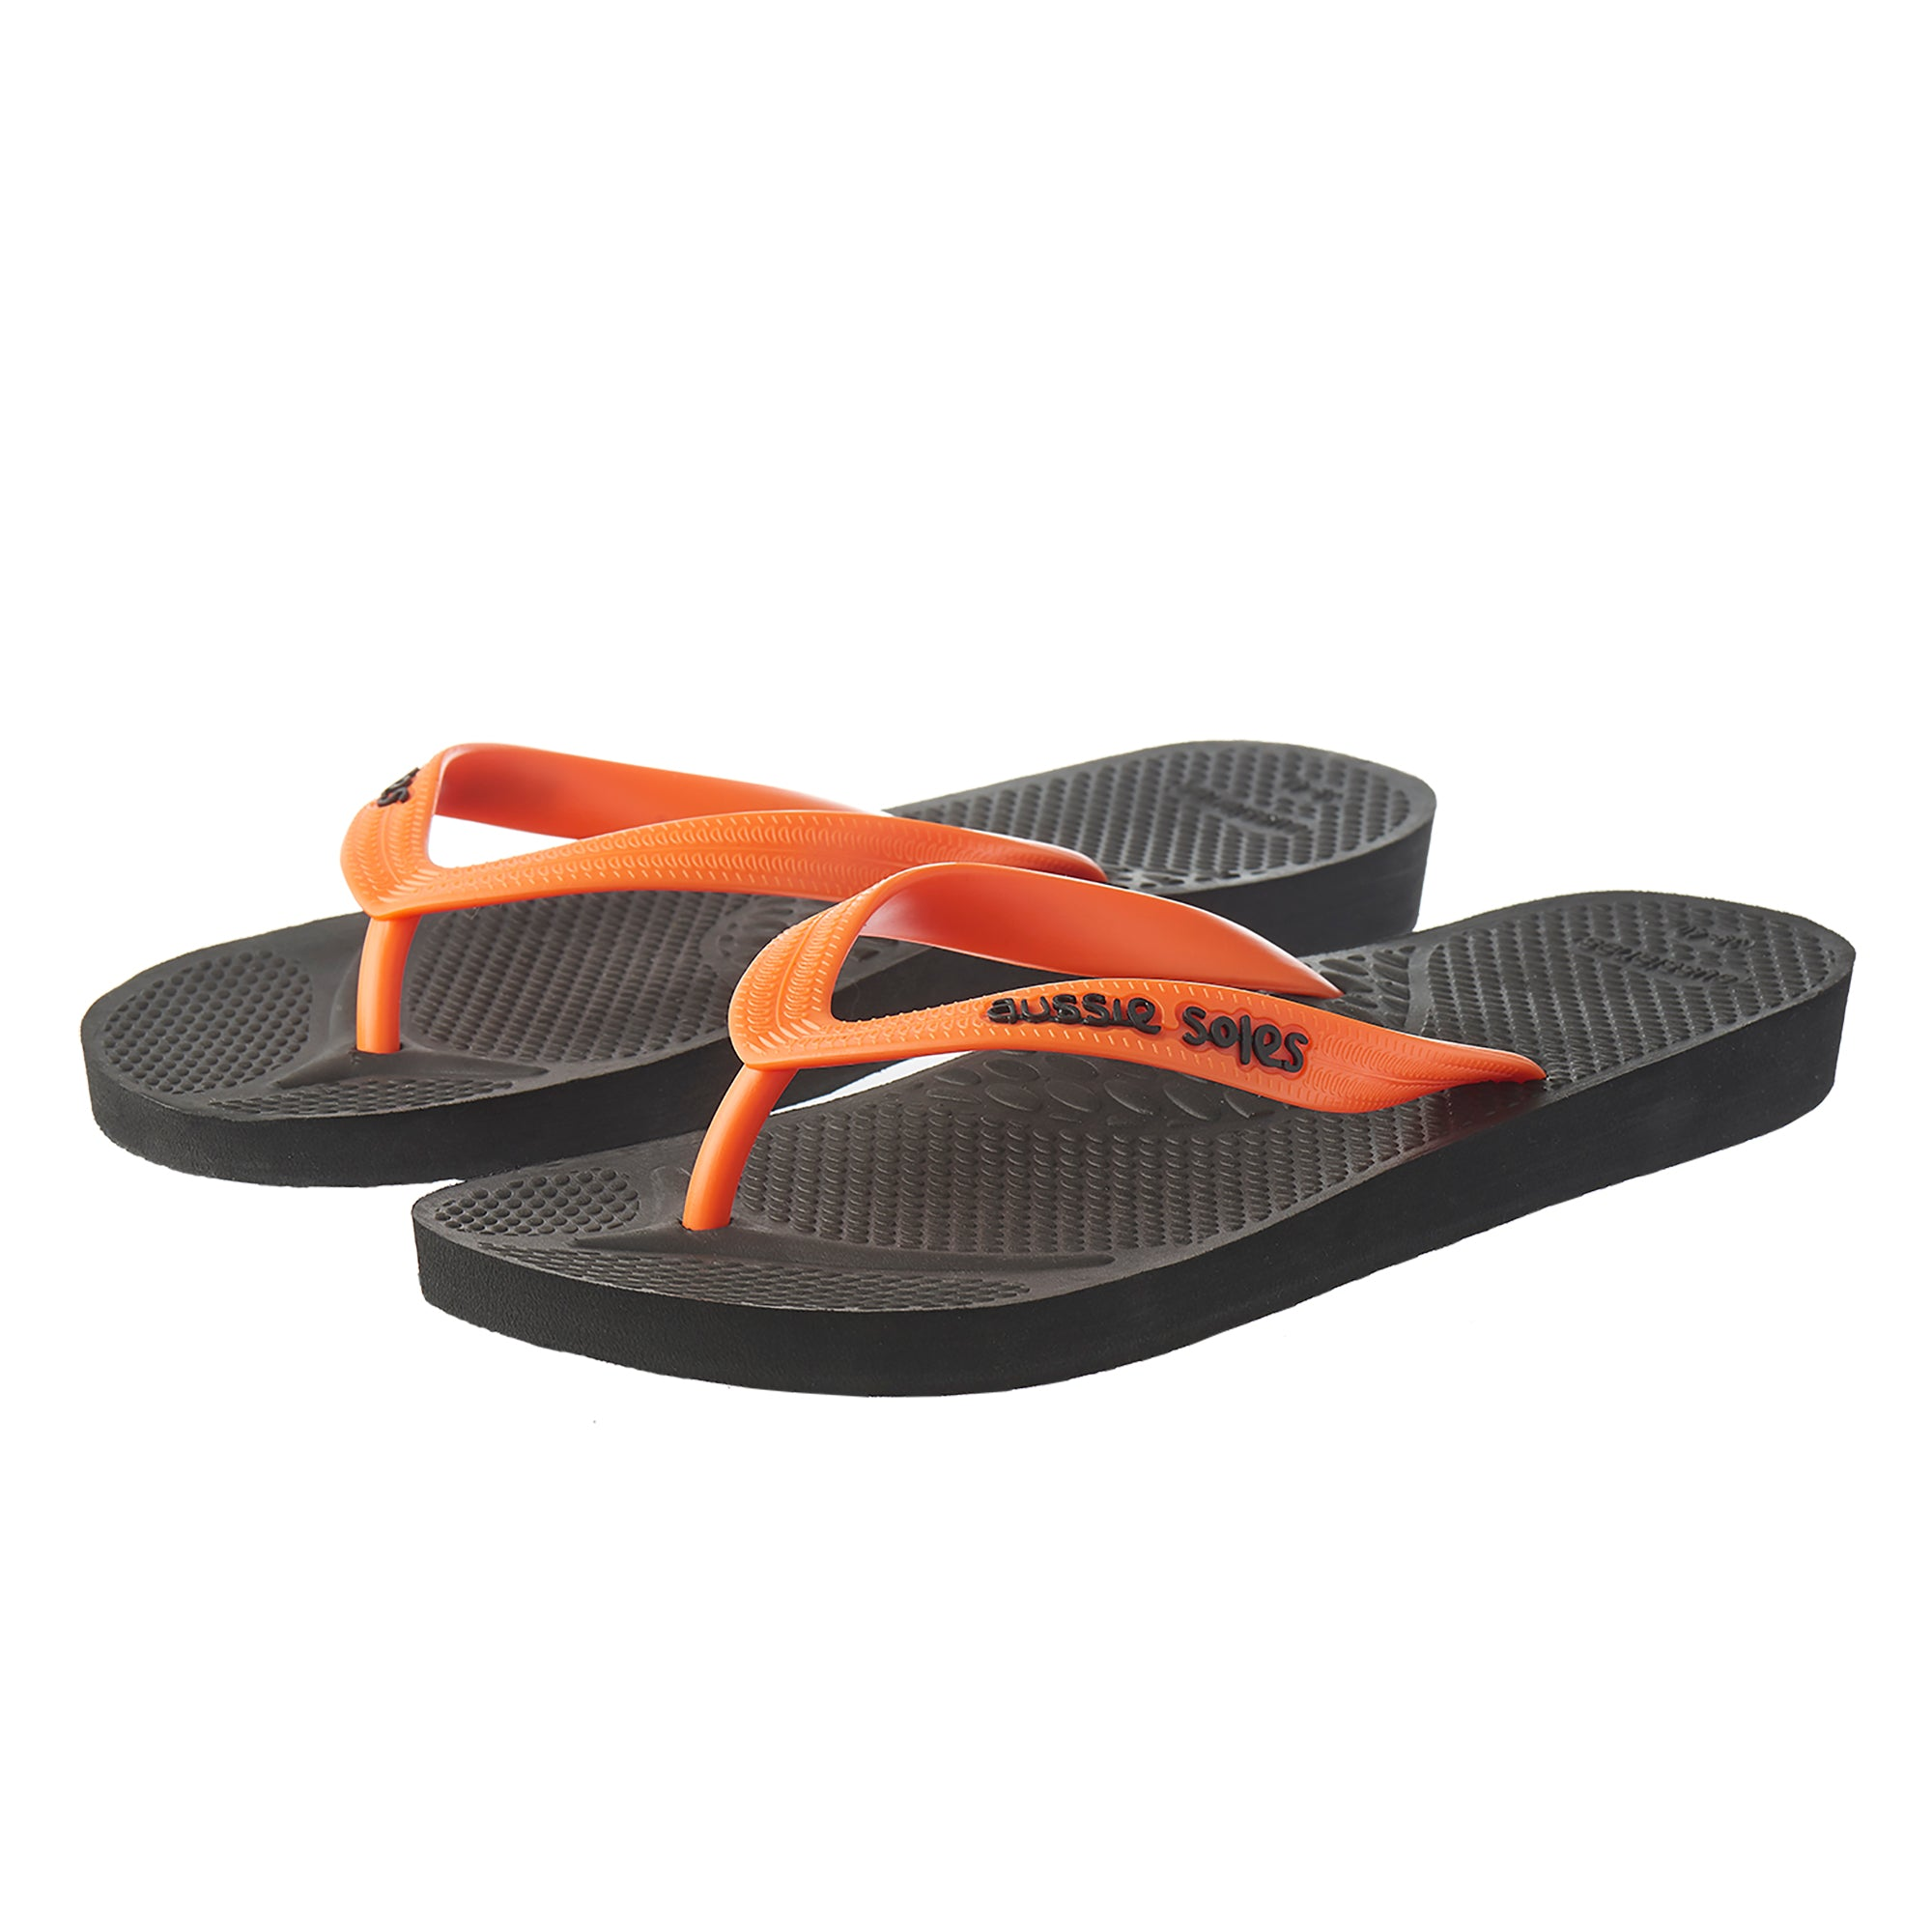 outlet store sale shoes for cheap buying new Flip-Flops With Arch Support: Aussie Soles Classics Orthotic ...